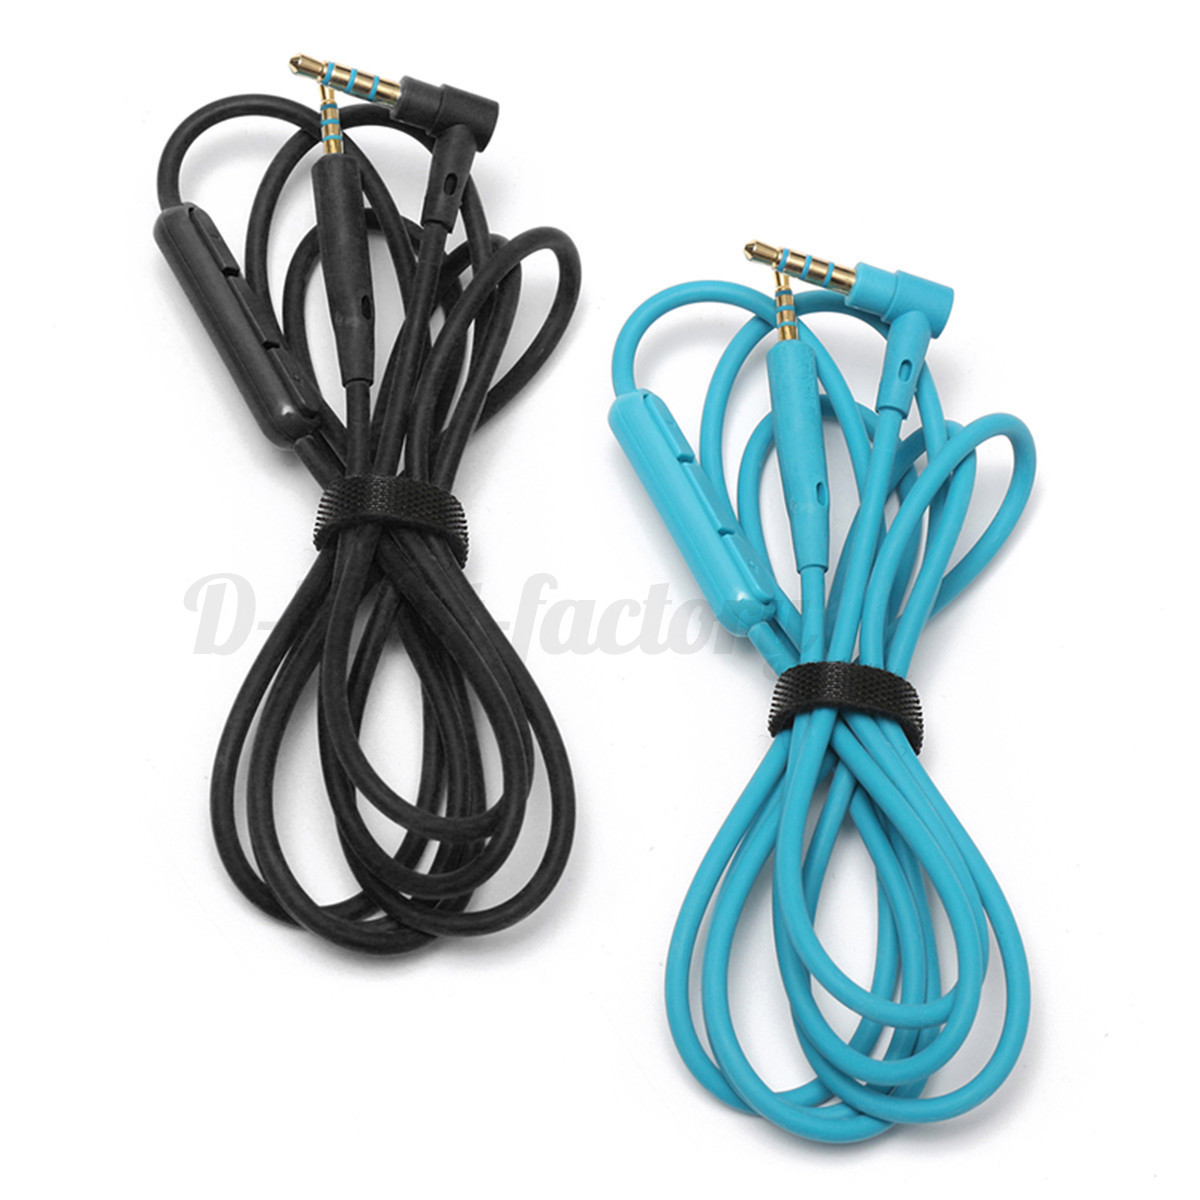 1.3m Audio Cable Extension Wire Cord w/Mic For BOSE QuietComfort ...